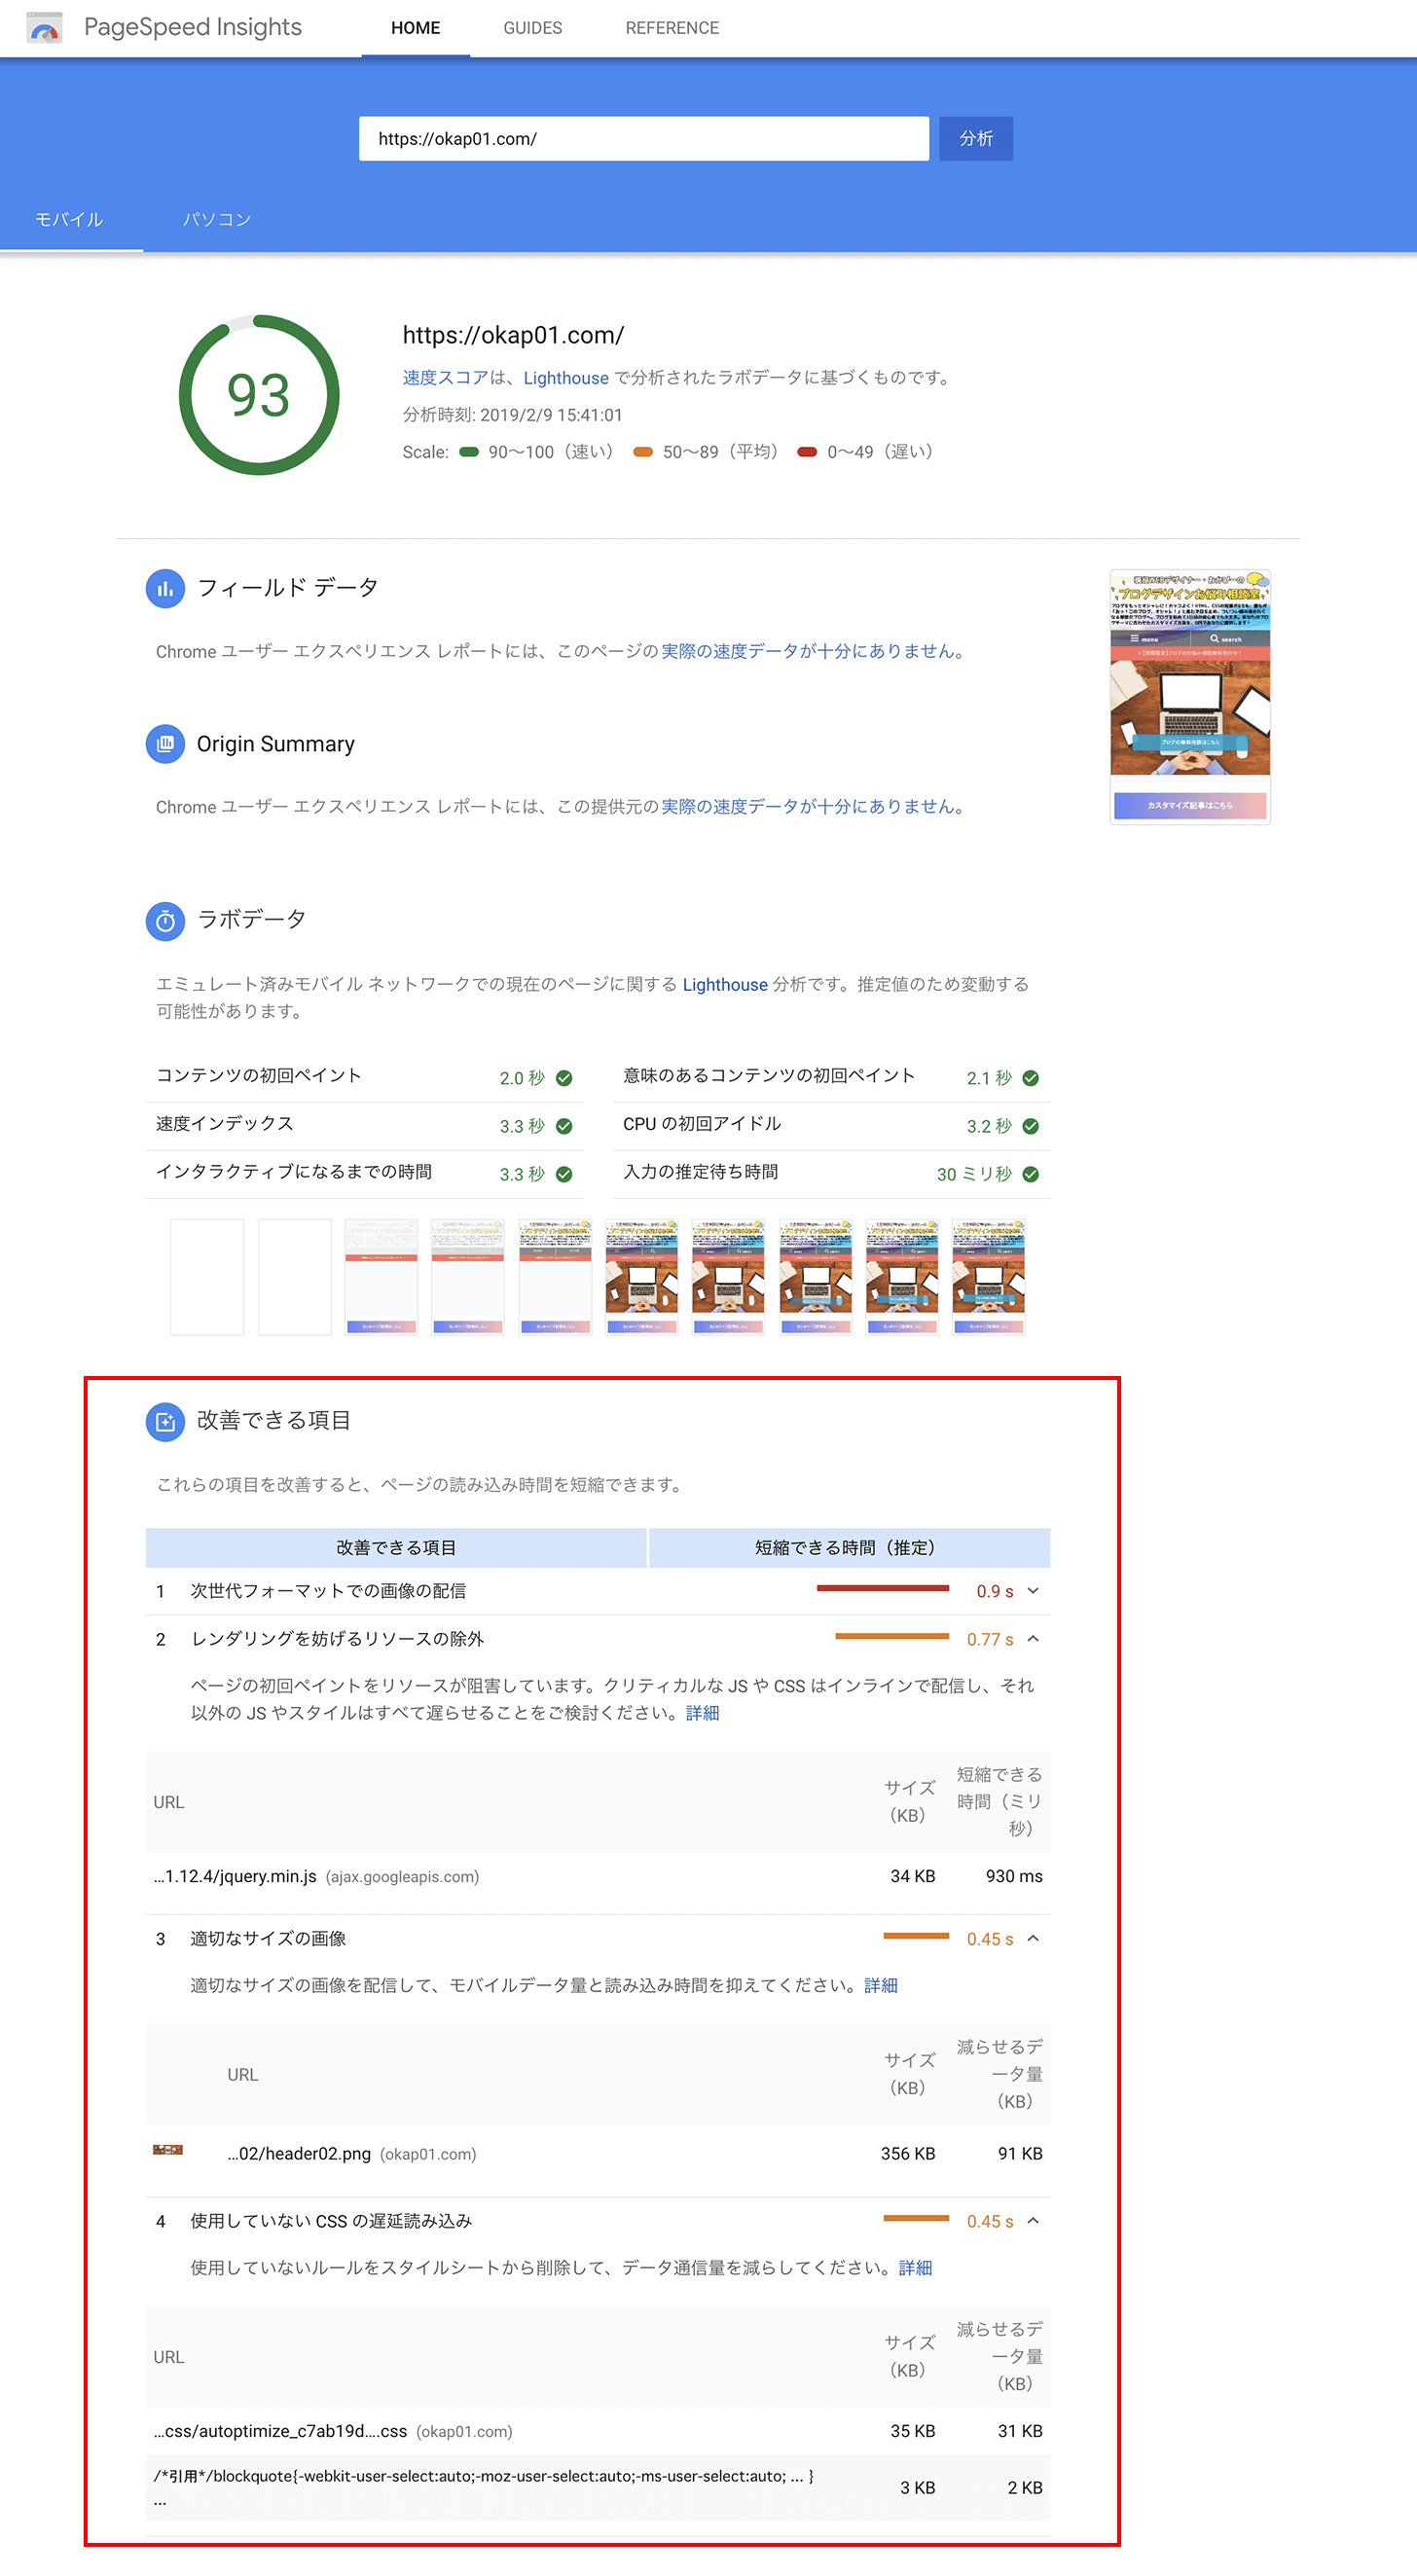 pagespeed-insights 93点 スマホ